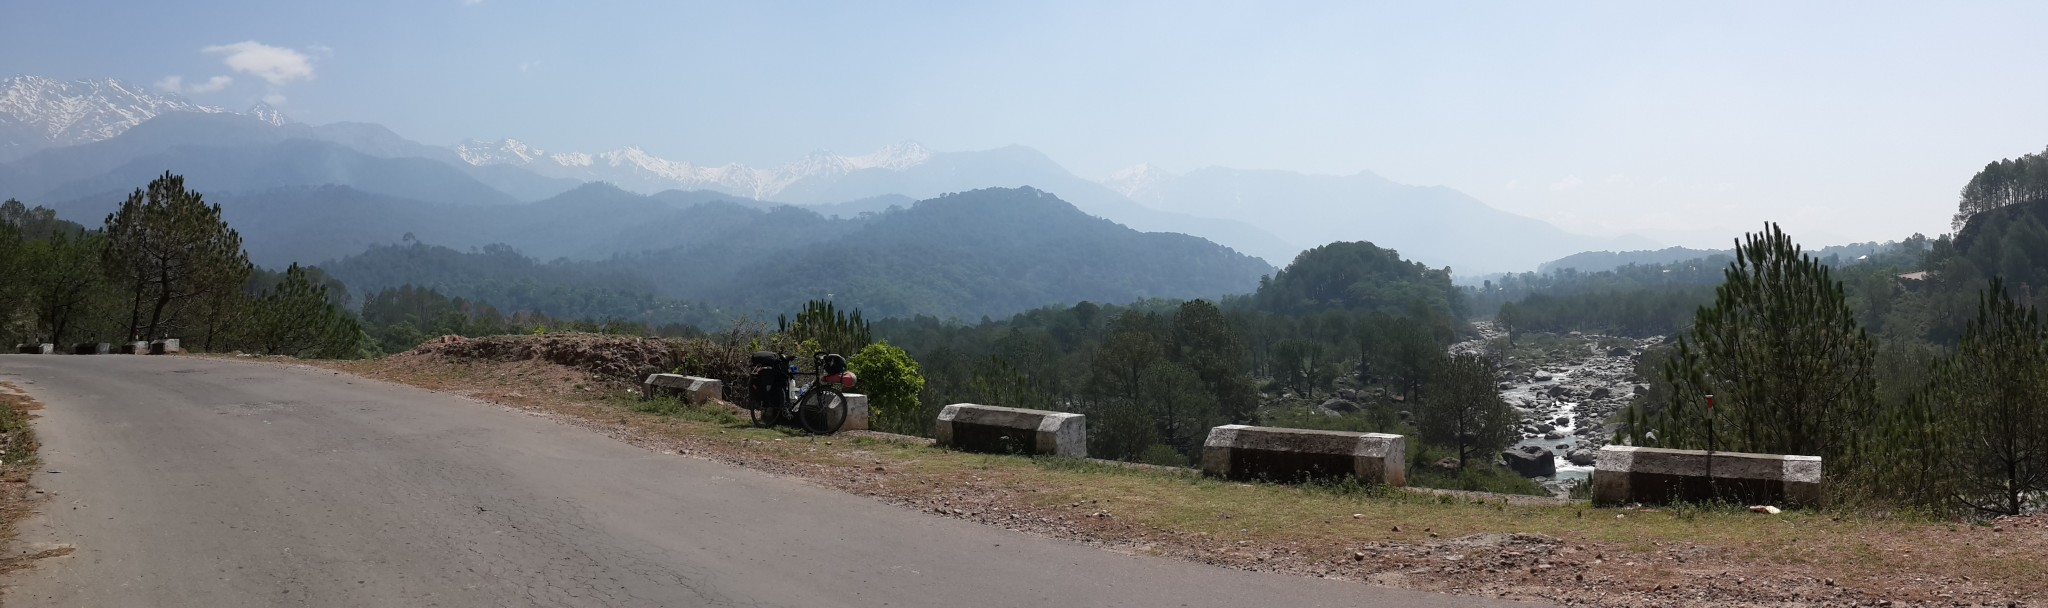 Second day on the road from McLeod Ganj.